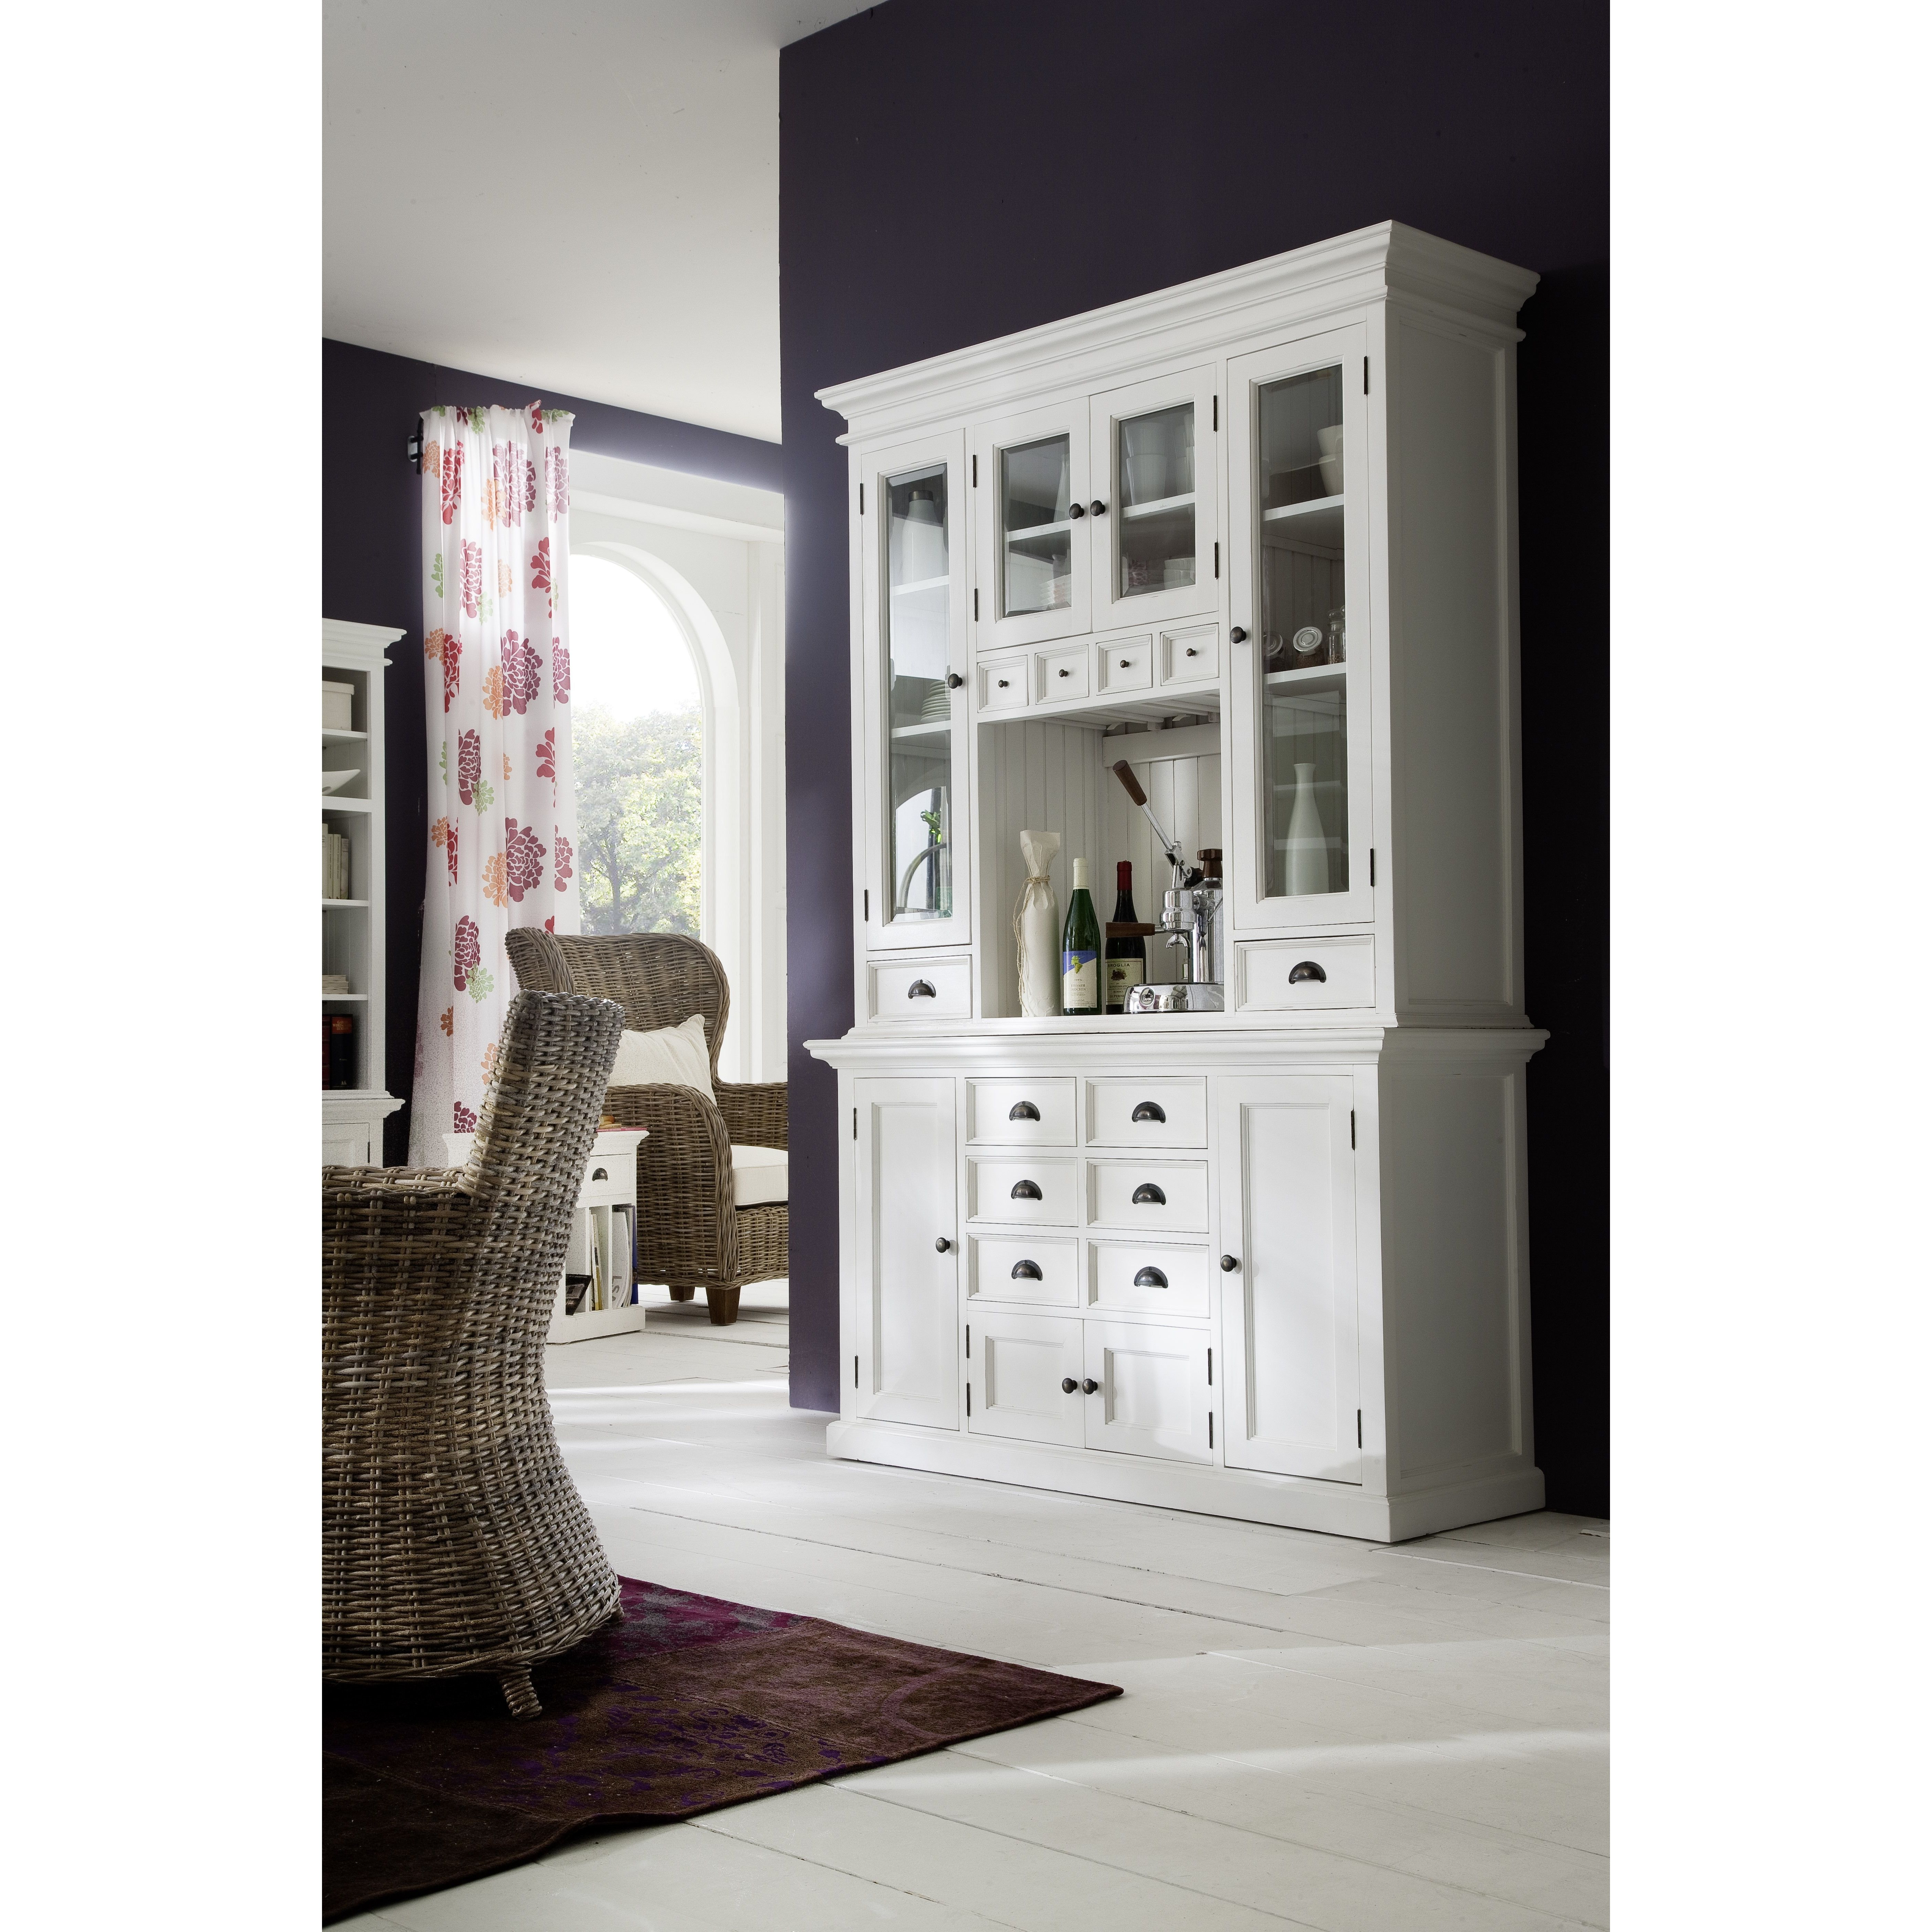 kitchen hutch china room ideas case furniture with tips dining display cabinet classic ikea curio white cabinets glass server storage dinin wood lighted interior